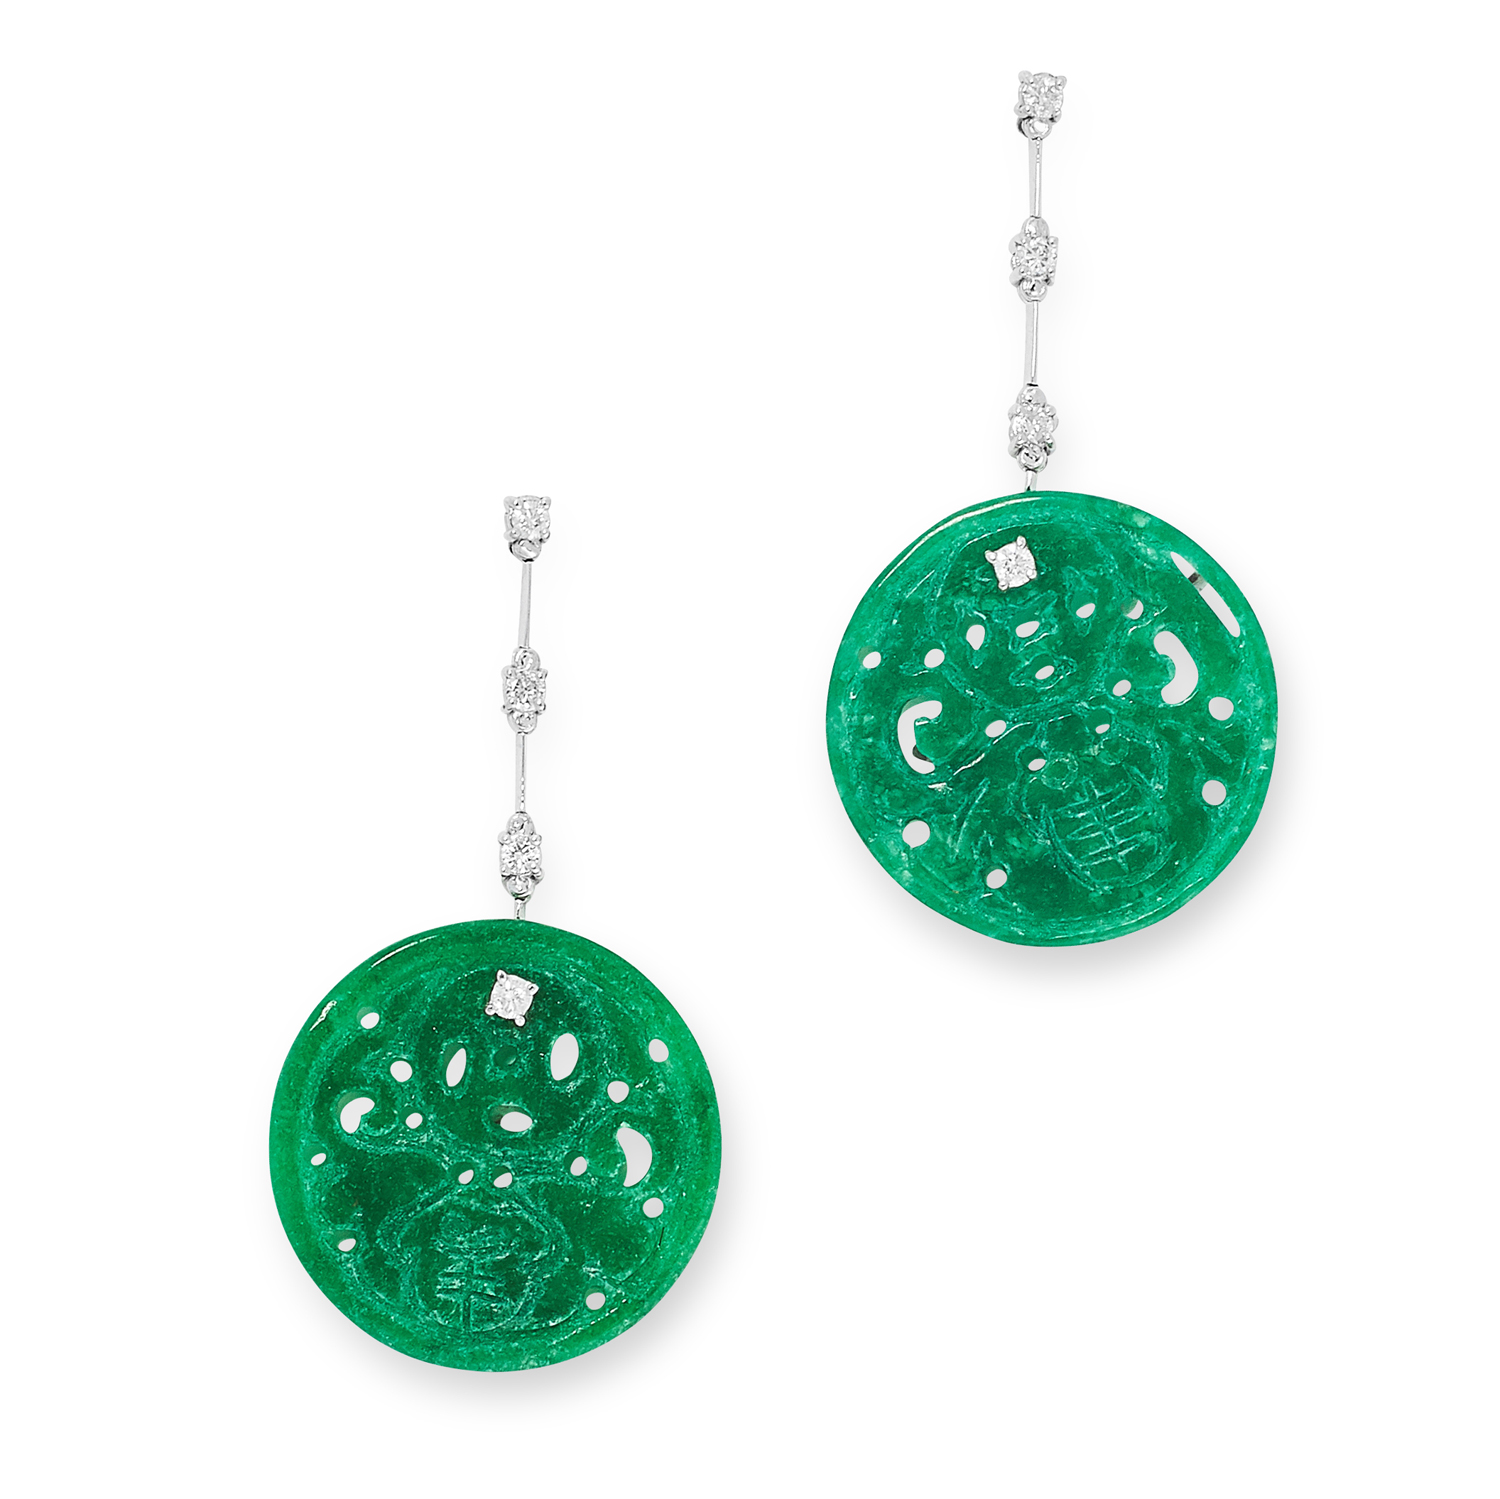 A PAIR OF CARVED JADEITE JADE AND DIAMOND EARRINGS set with round carved jadeite jade discs and